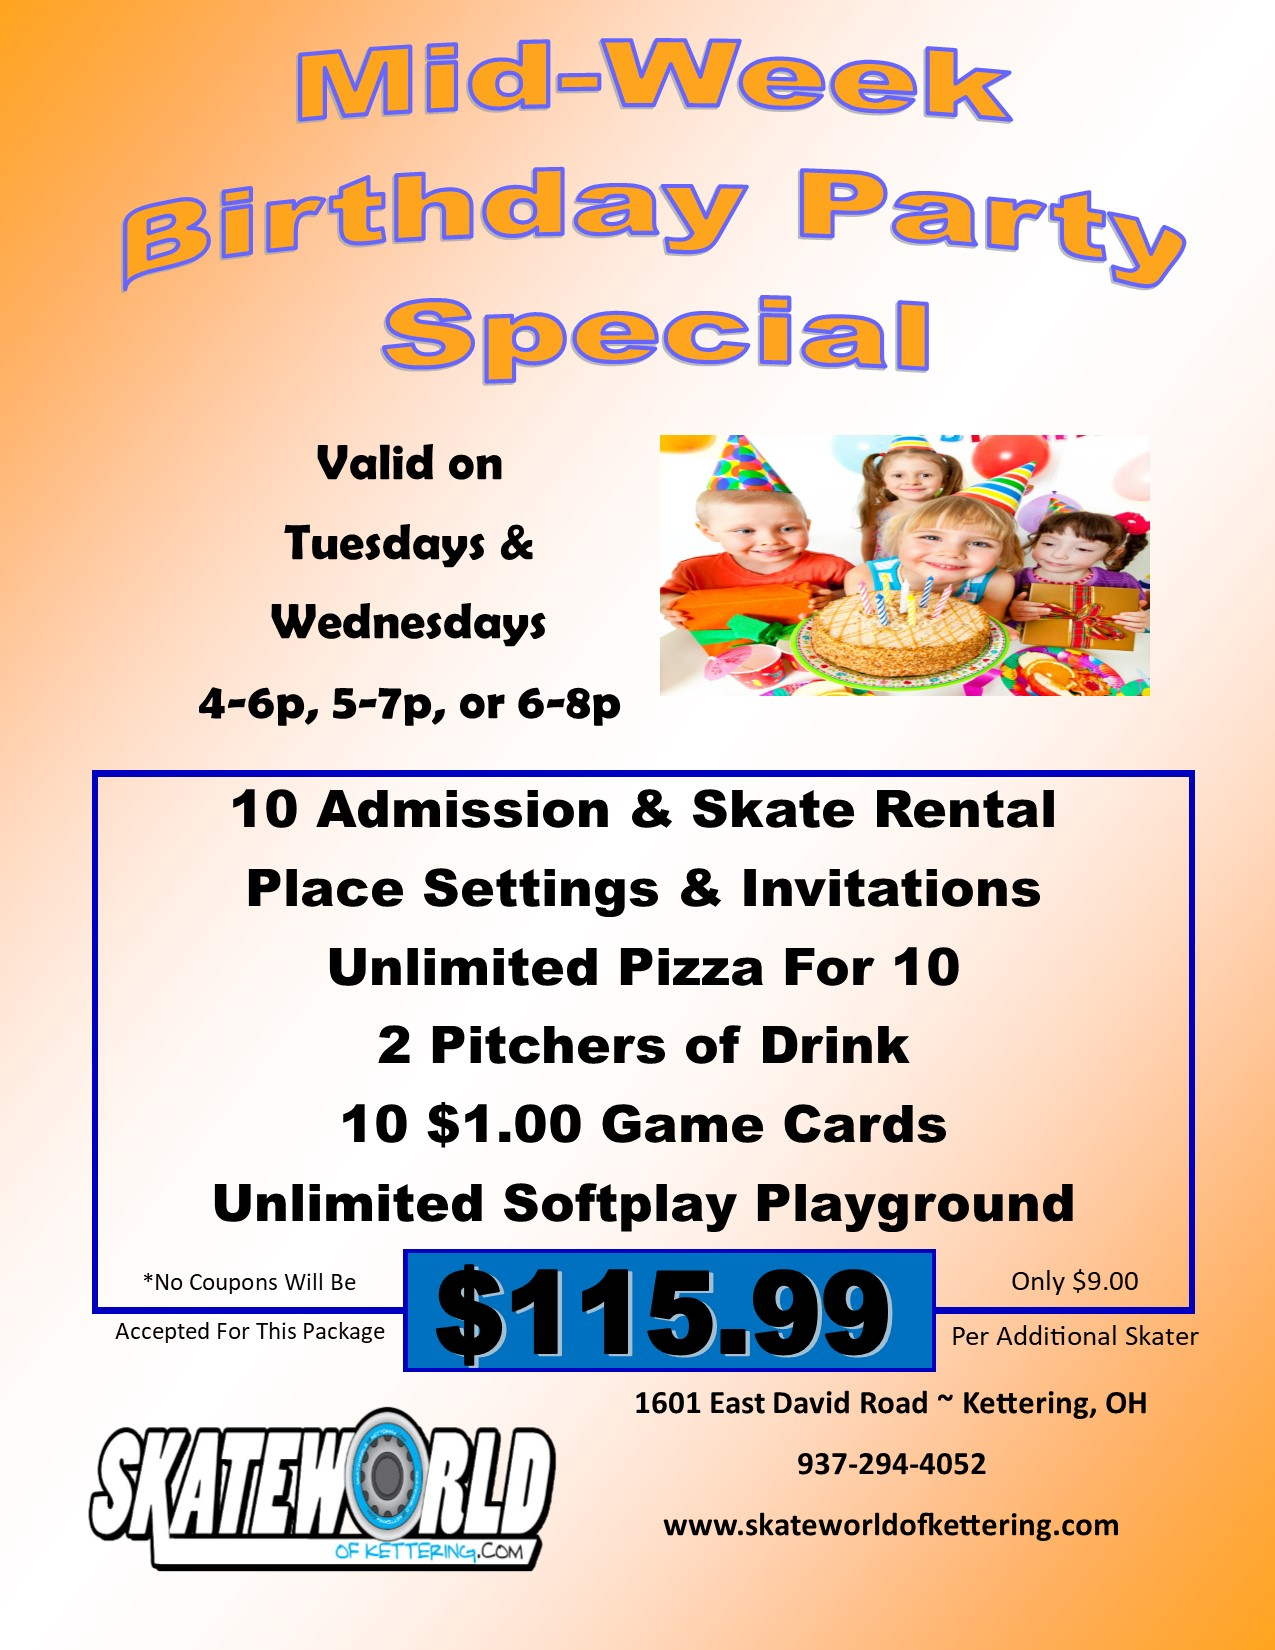 Click Here To Book A Birthday Party